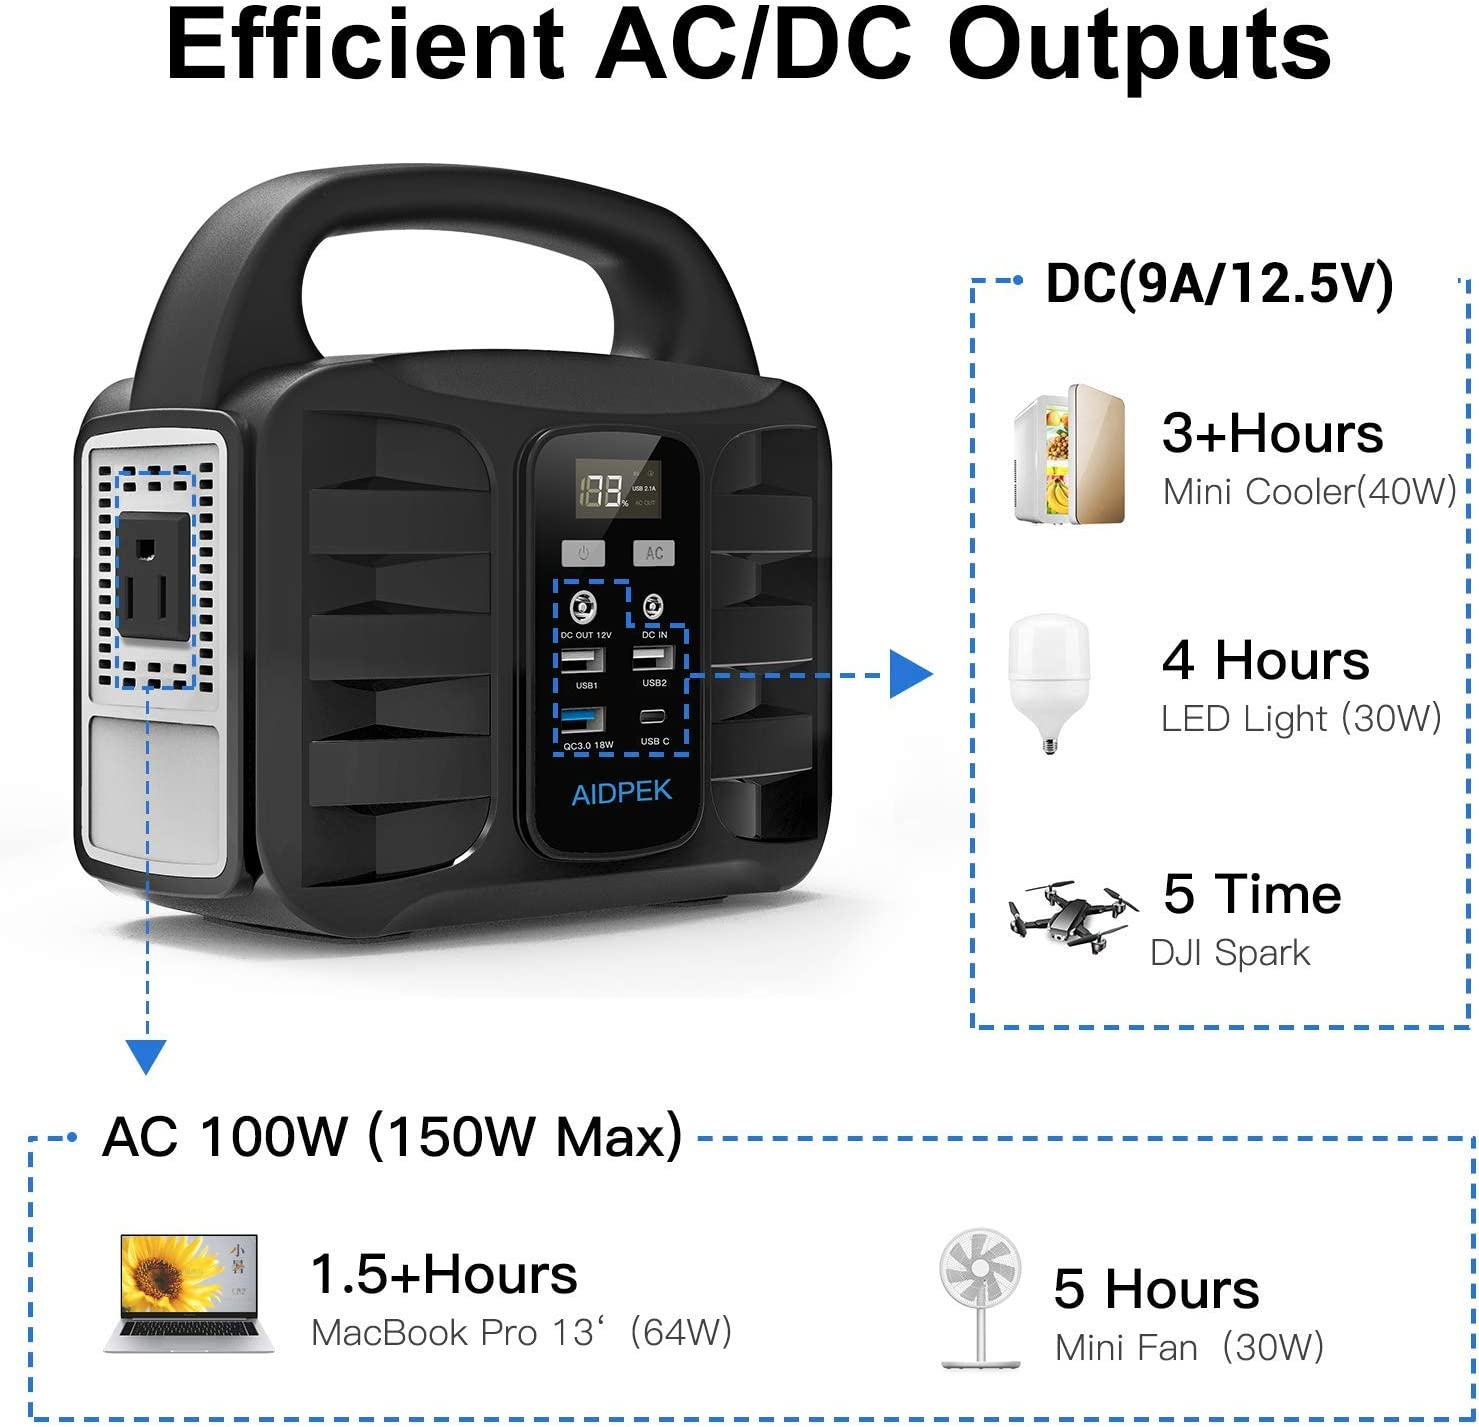 LED Flashlights for CPAP Home Camping Emergency AIDPEK 100W Portable Power Station,155Wh 42000MAH Camping Solar Generators with 2 DC Ports,USB QC3.0